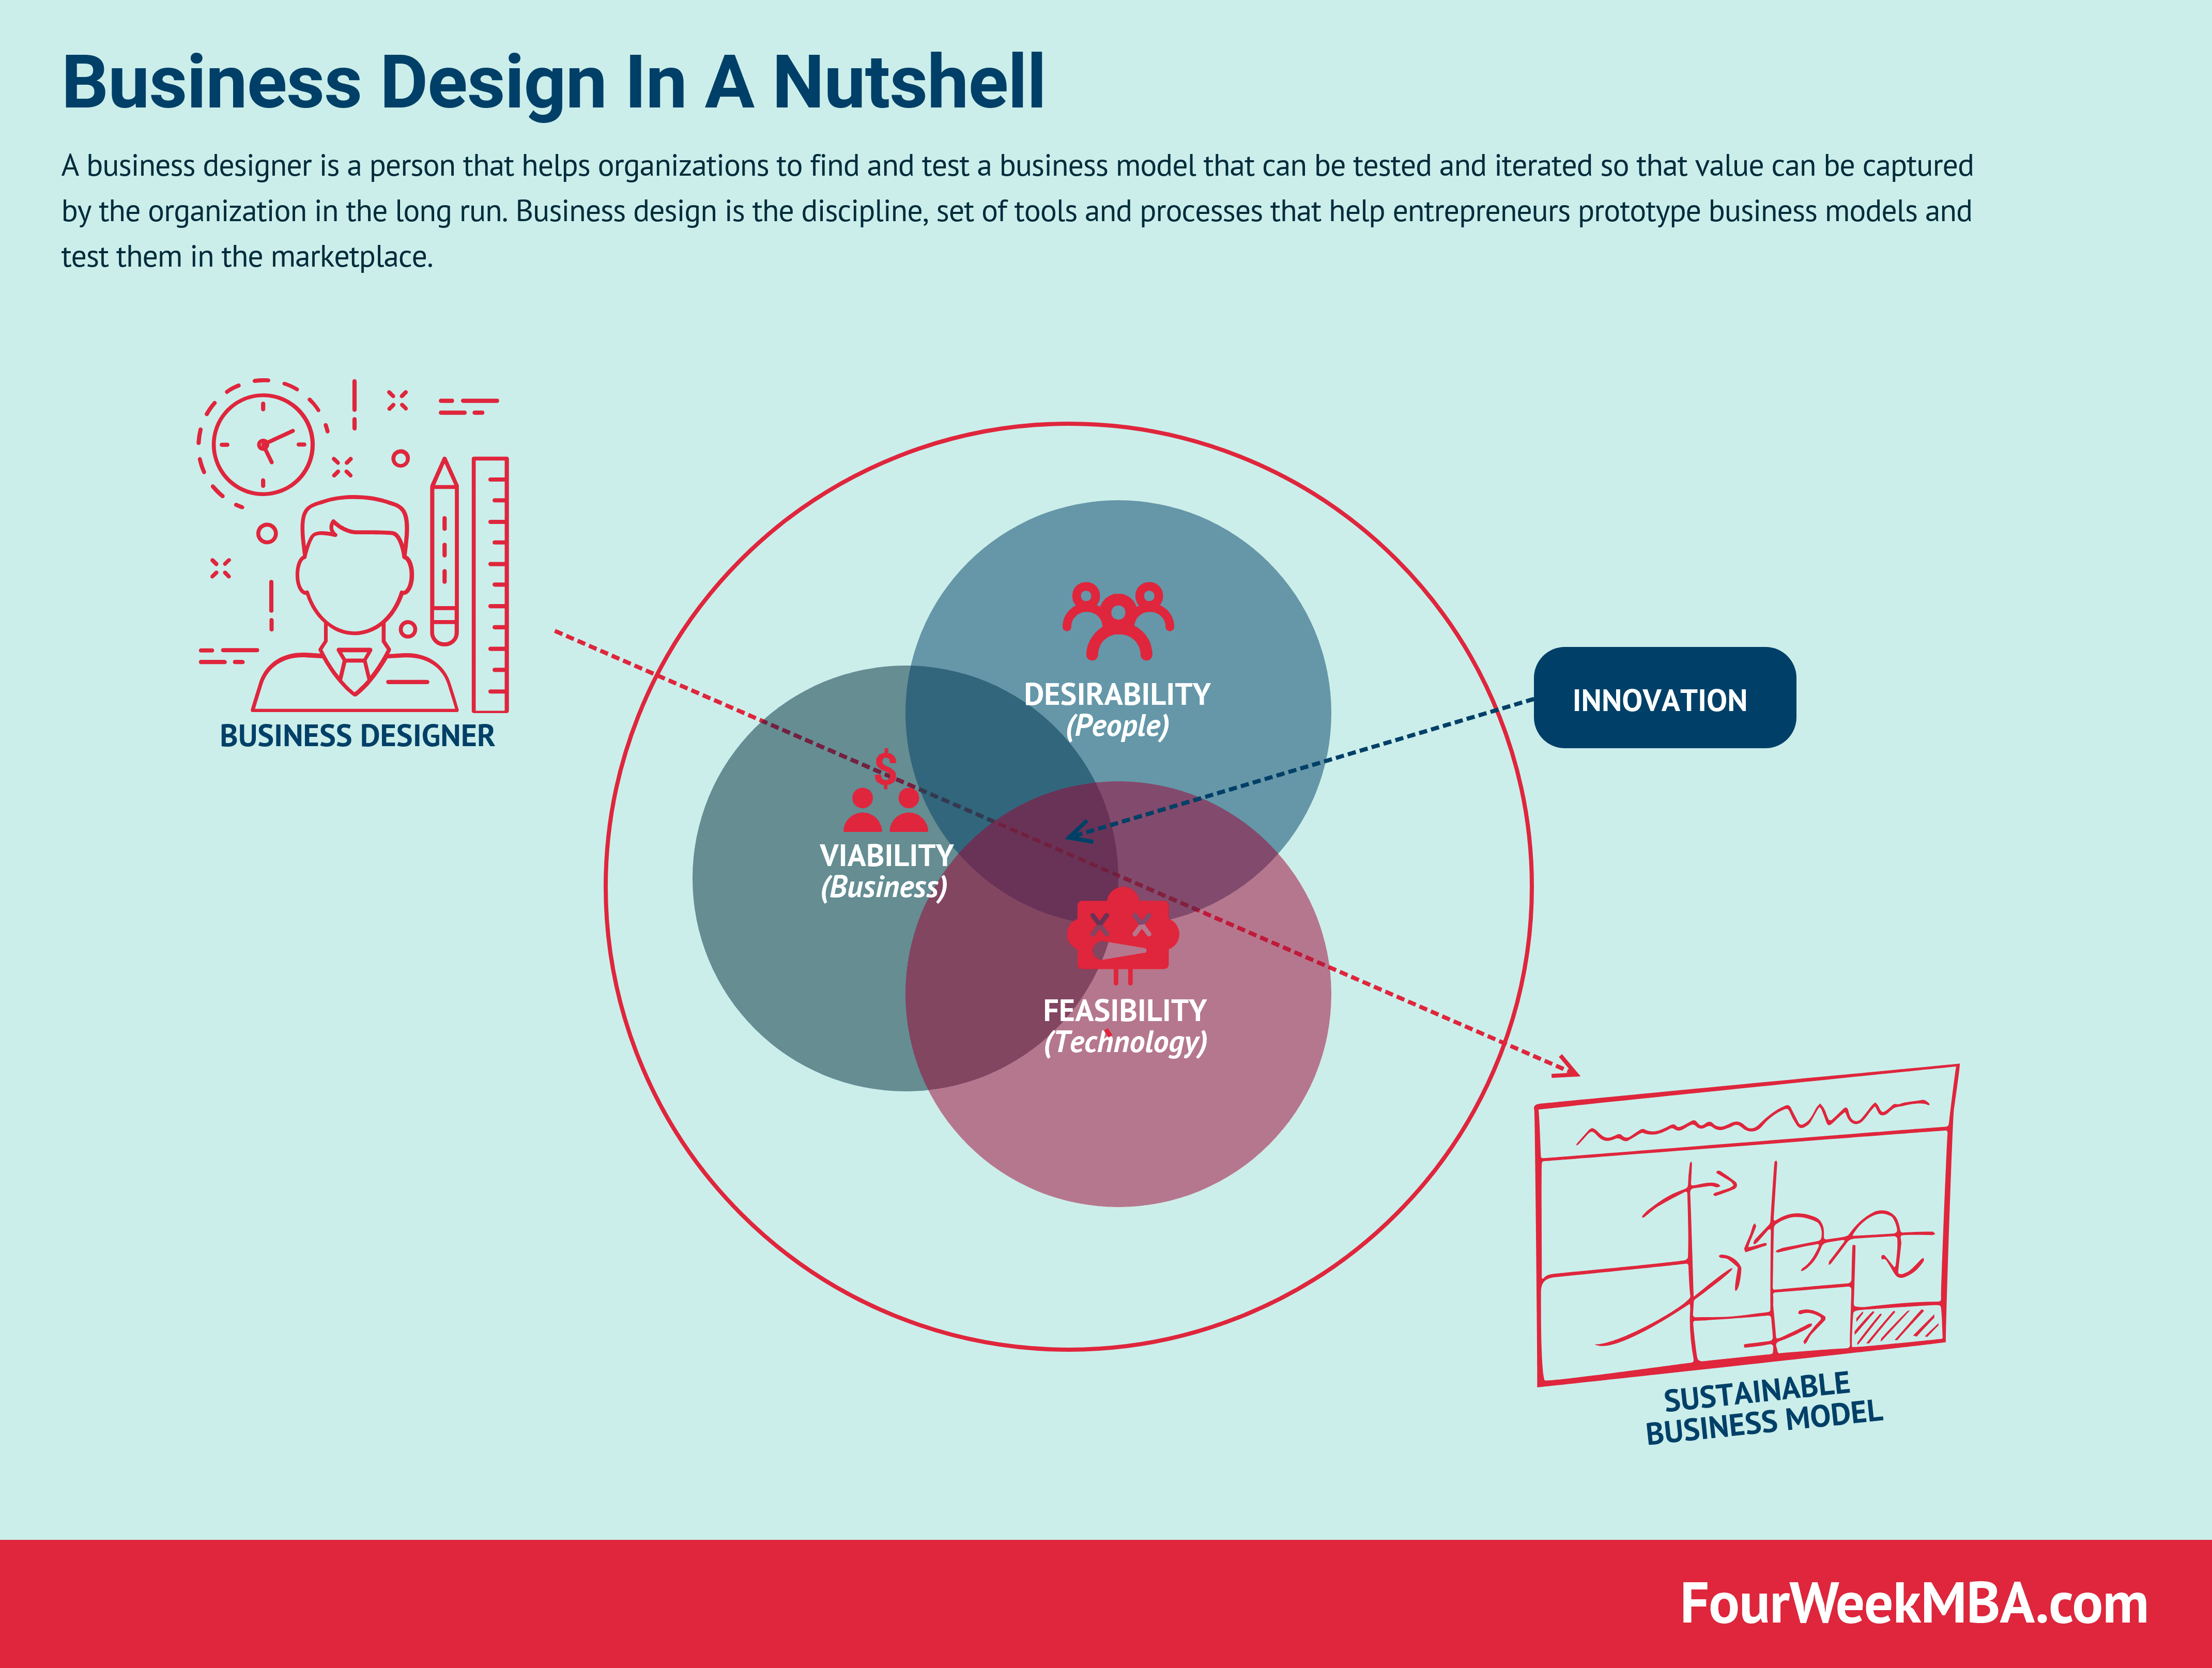 What Is A Business Designer Design In Nutshell